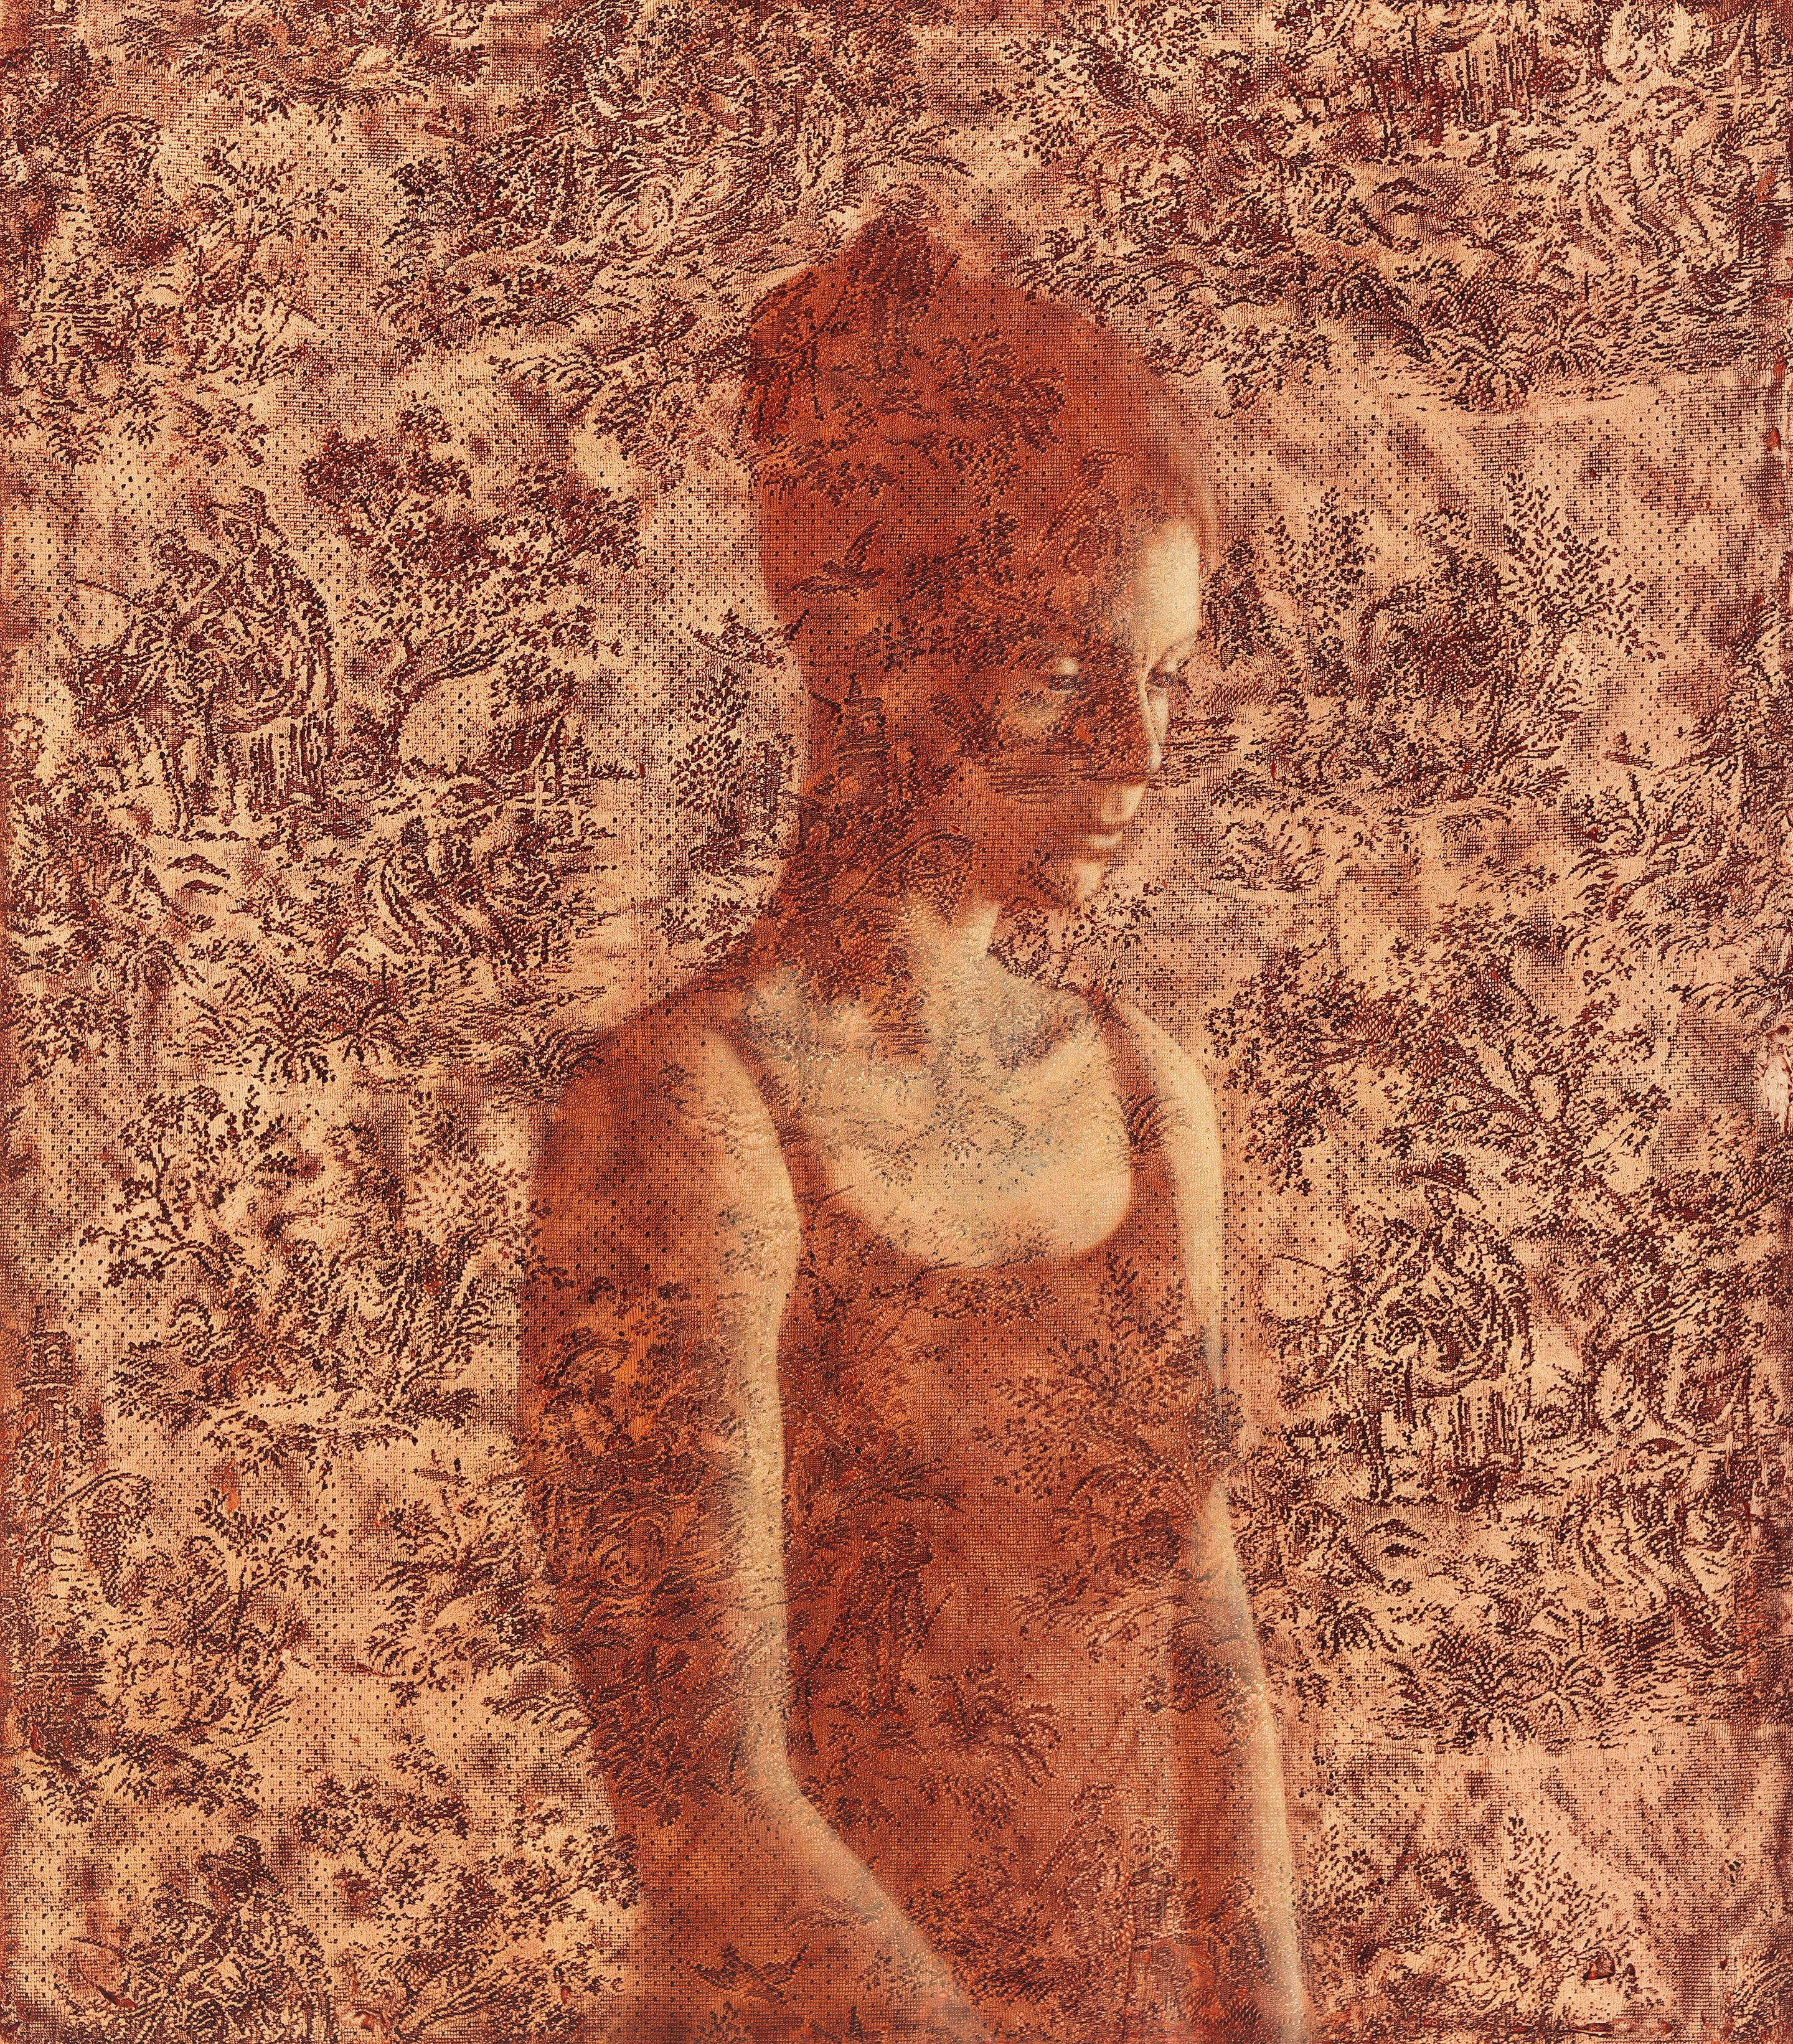 REMINISCENCE - contemporary contemplative painting of young woman with floral